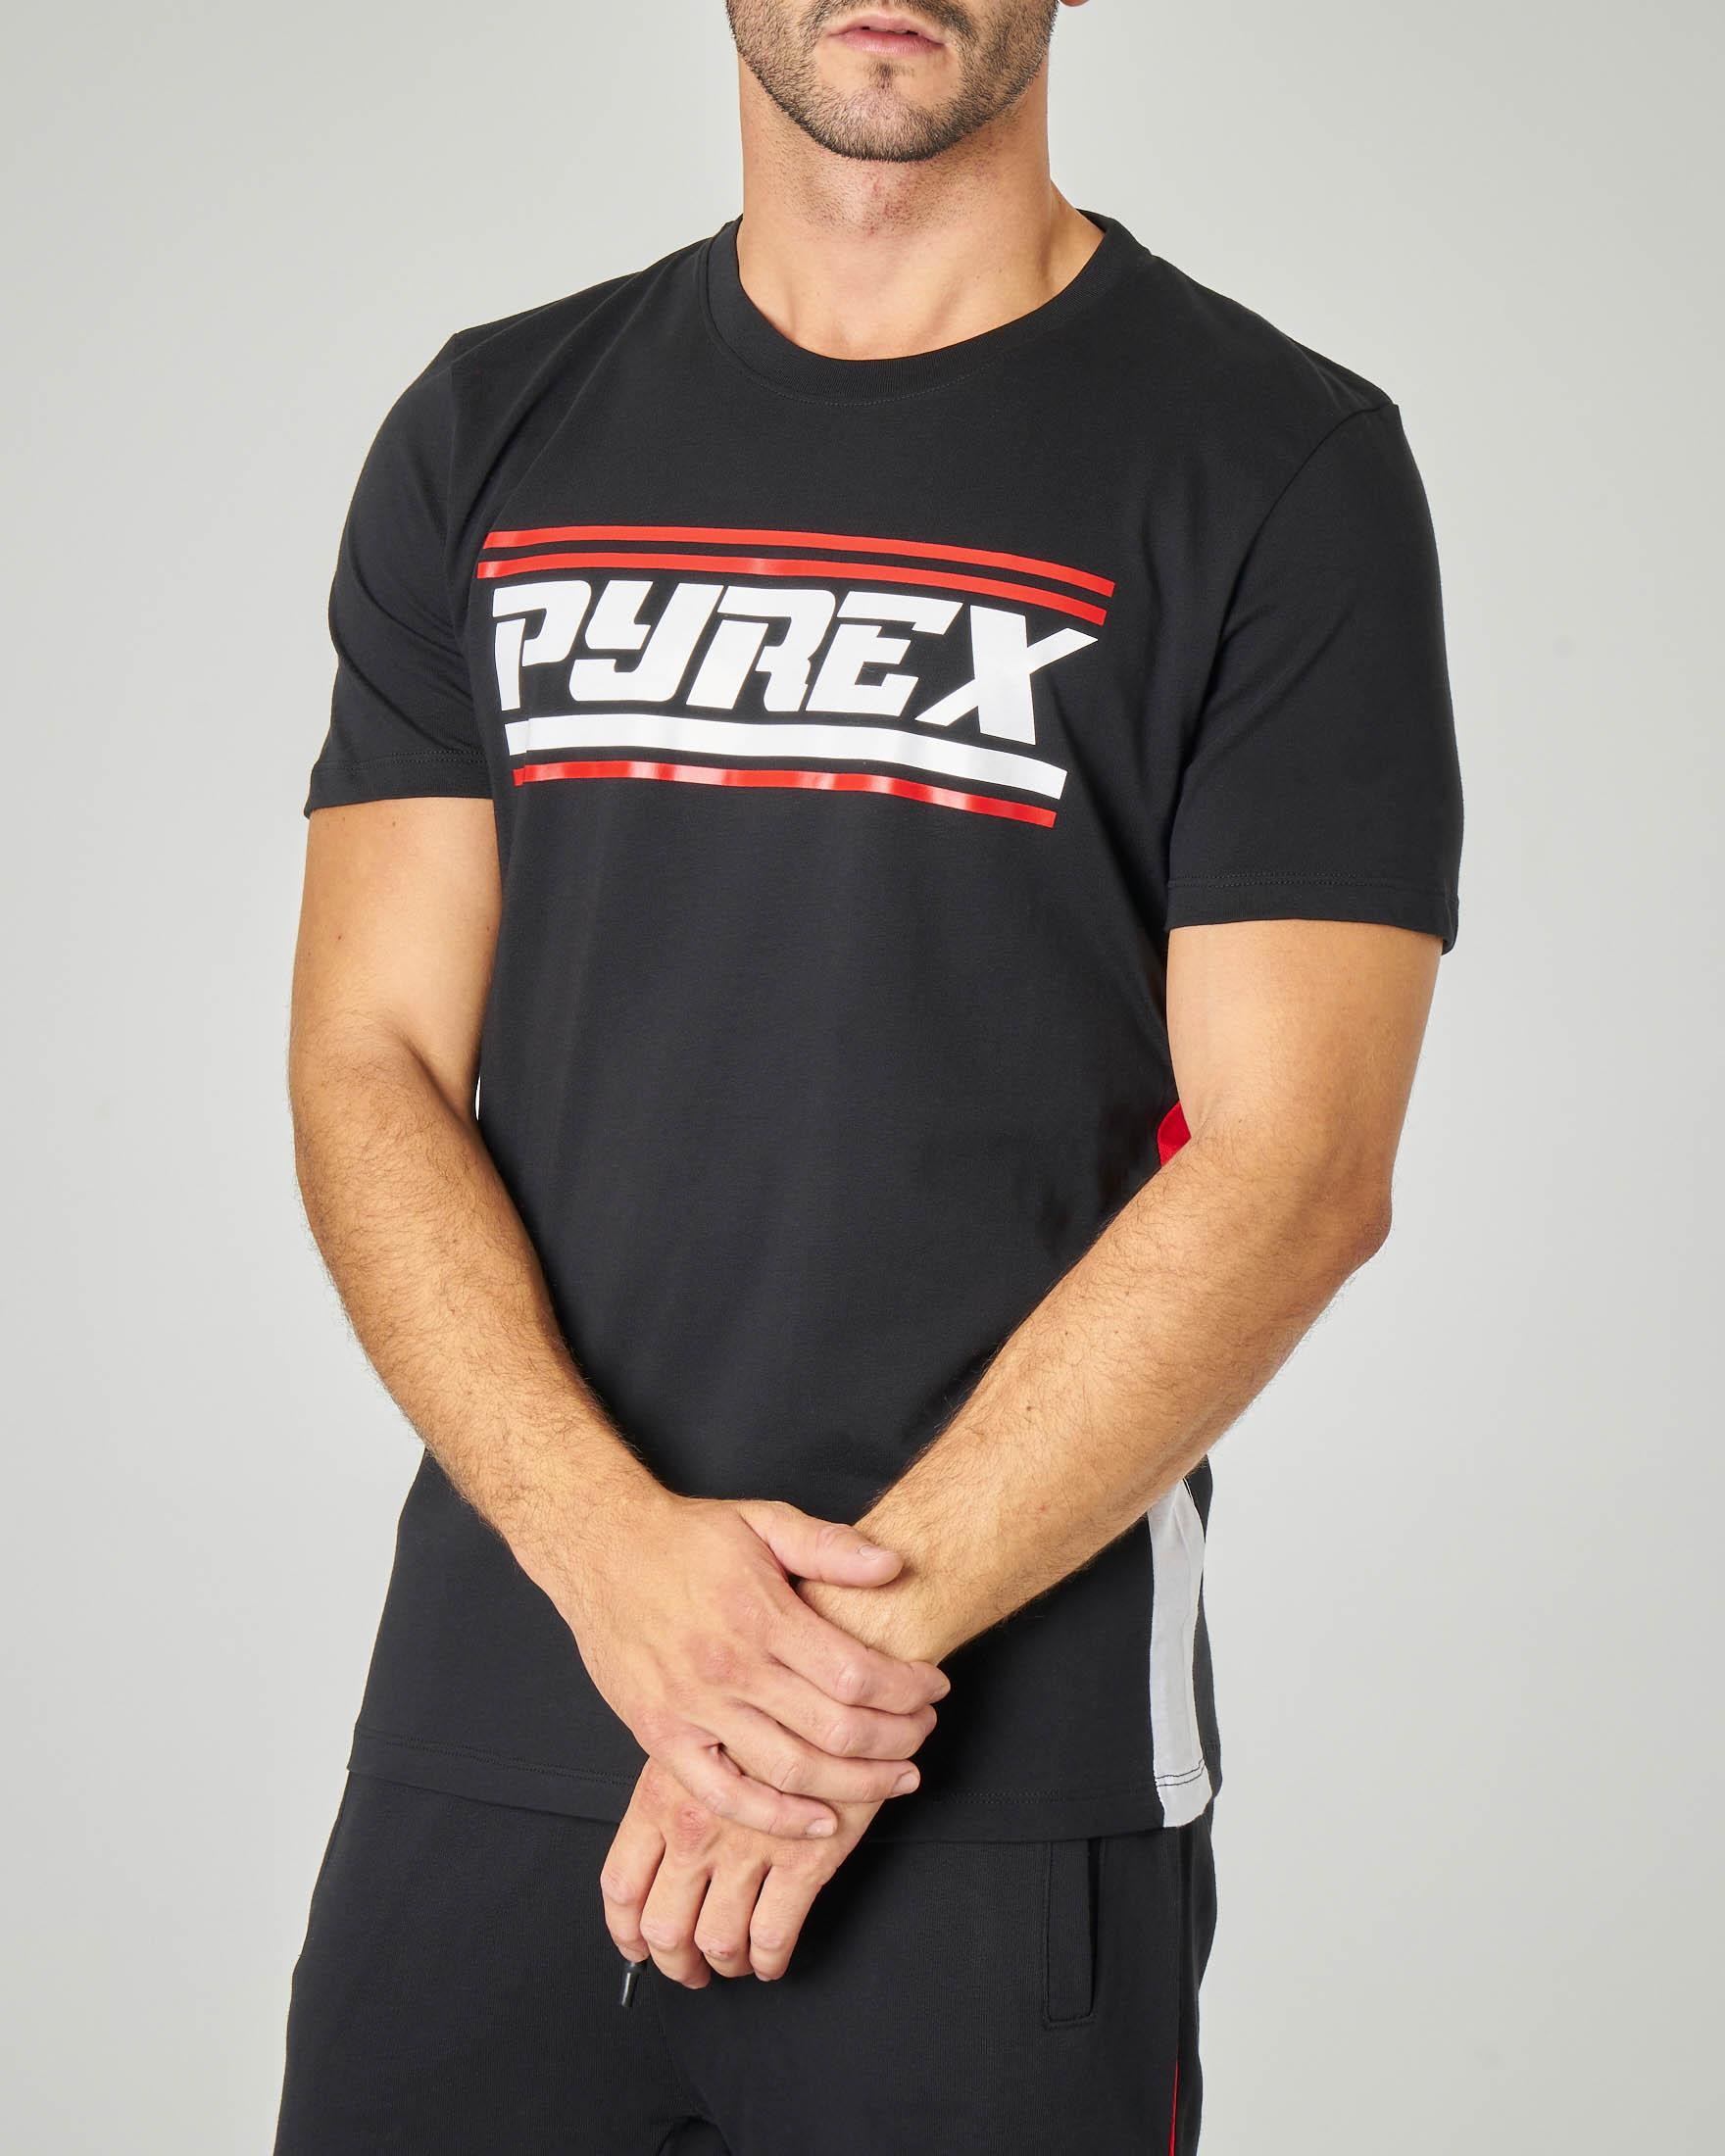 T-shirt nera con logo Pyrex in stile racing